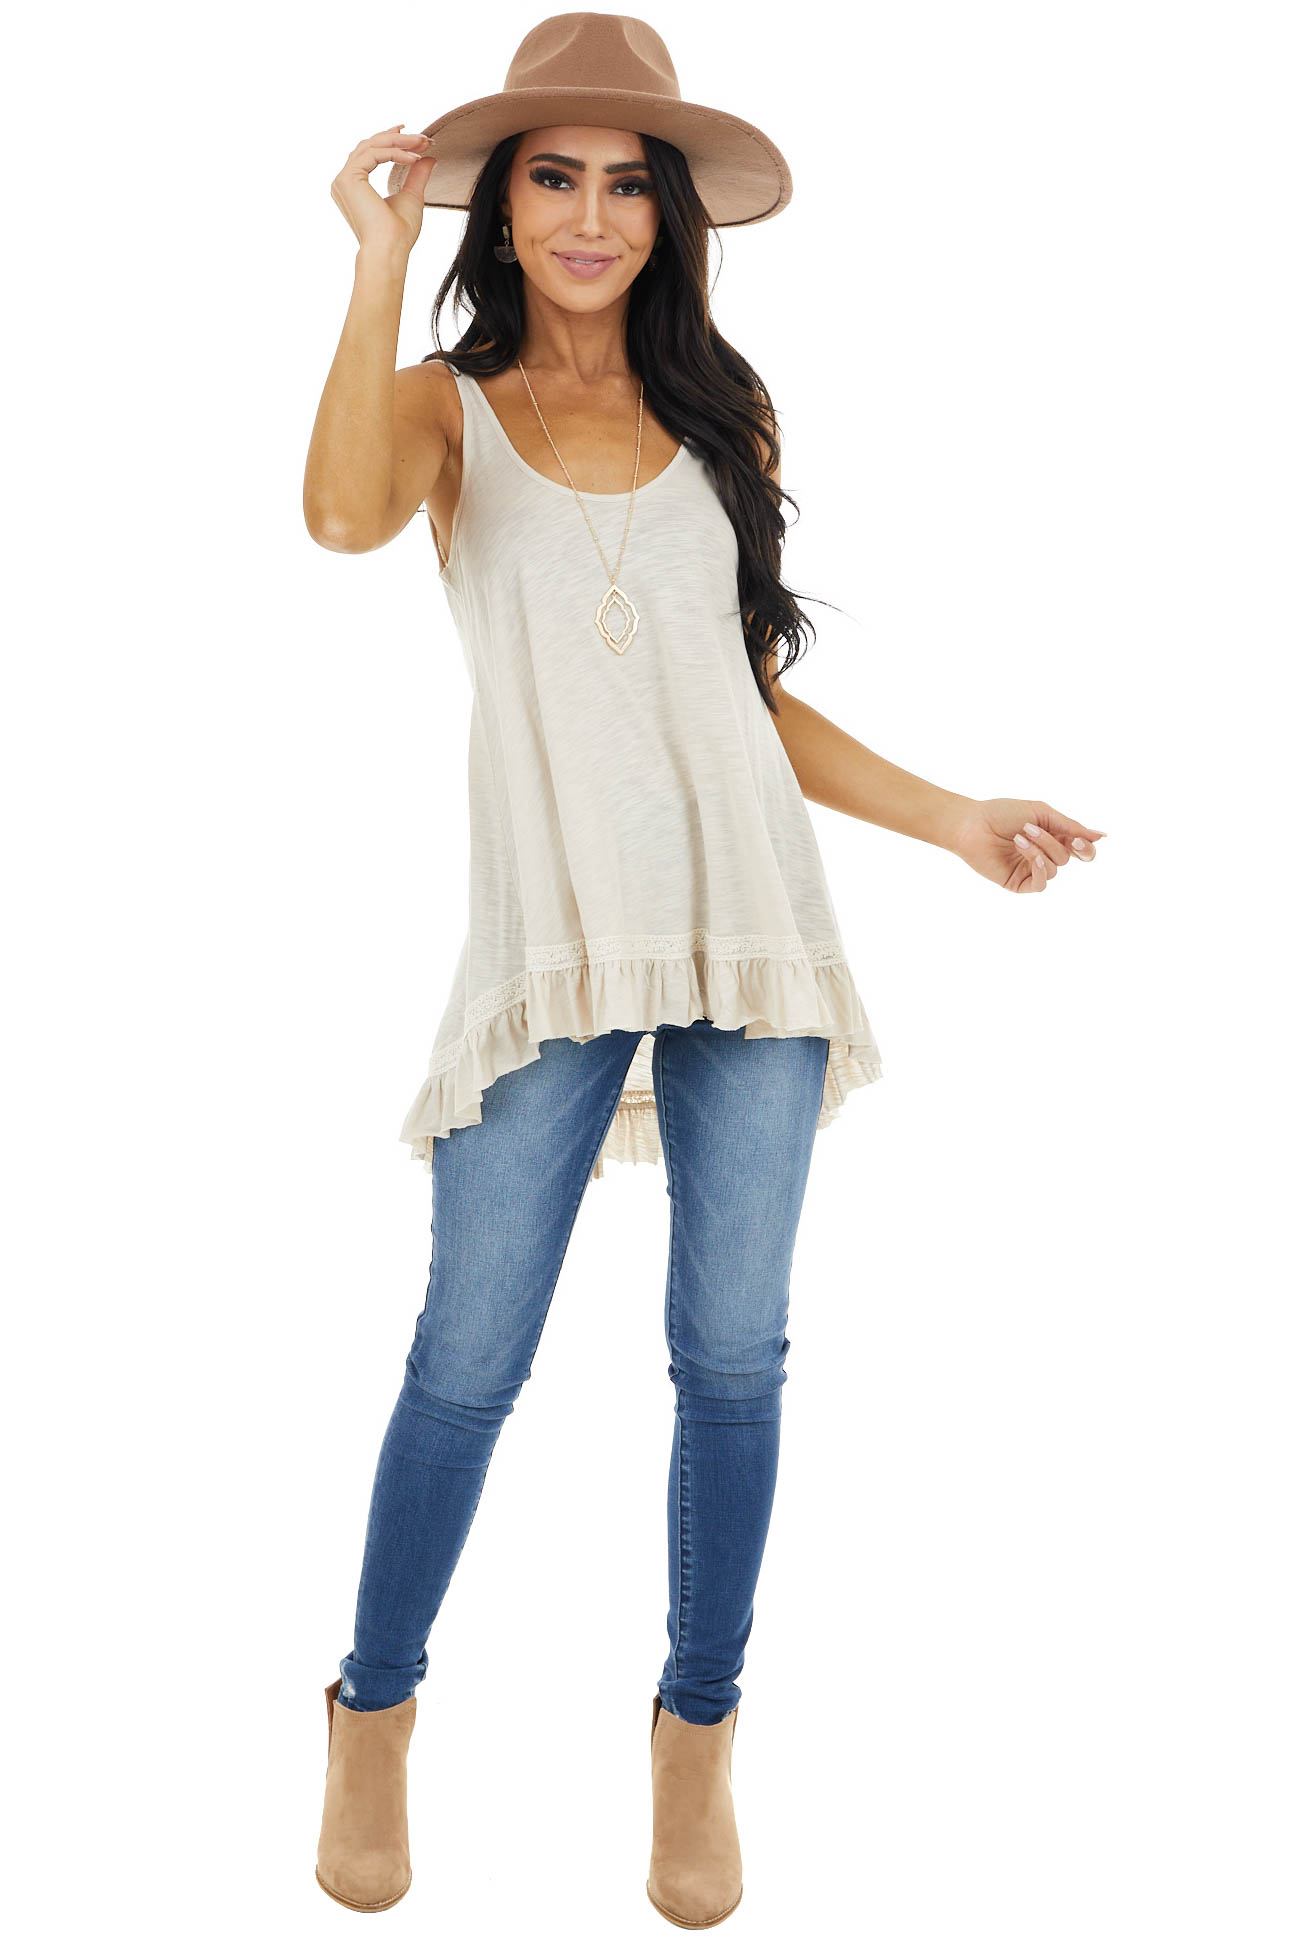 Heathered Oatmeal Knit Tank Top with Ruffle Details